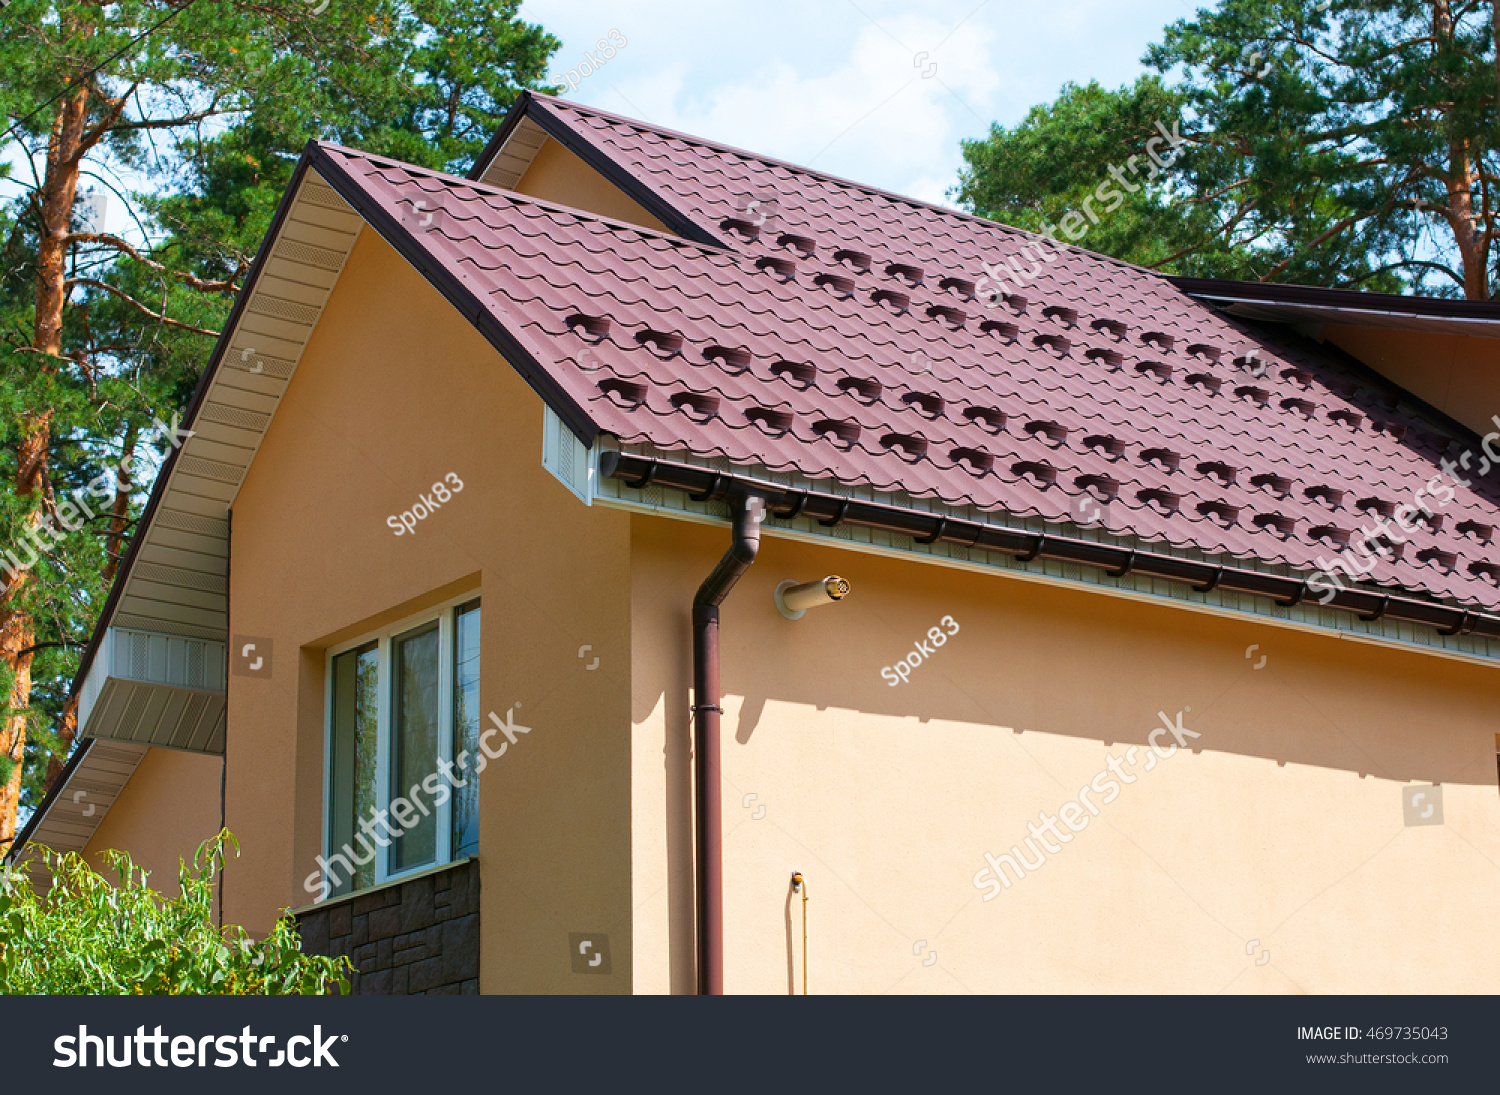 New Metal Roofing Construction Rain Gutter Stock Photo (Royalty Free ...